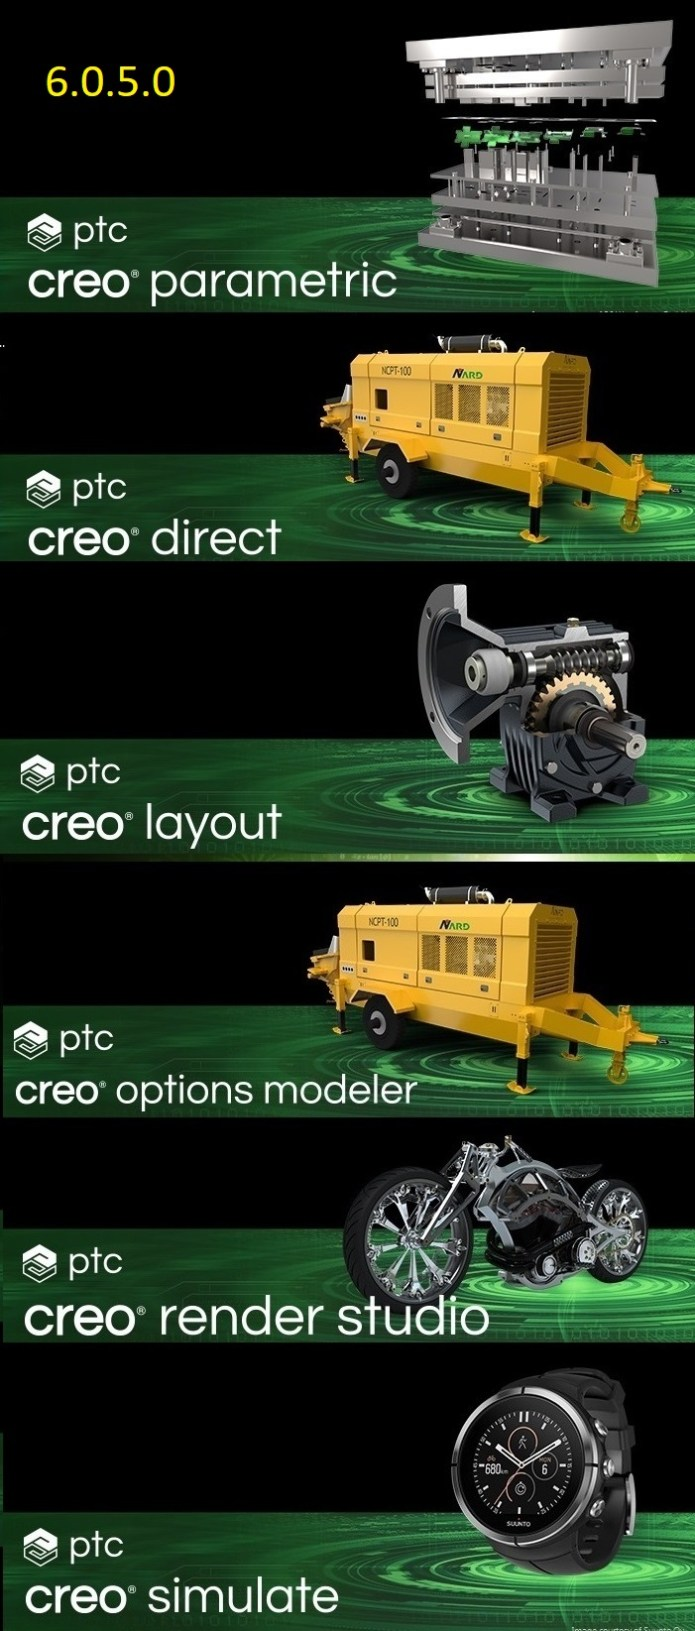 PTC Creo 6.0.5.0 win64 full license